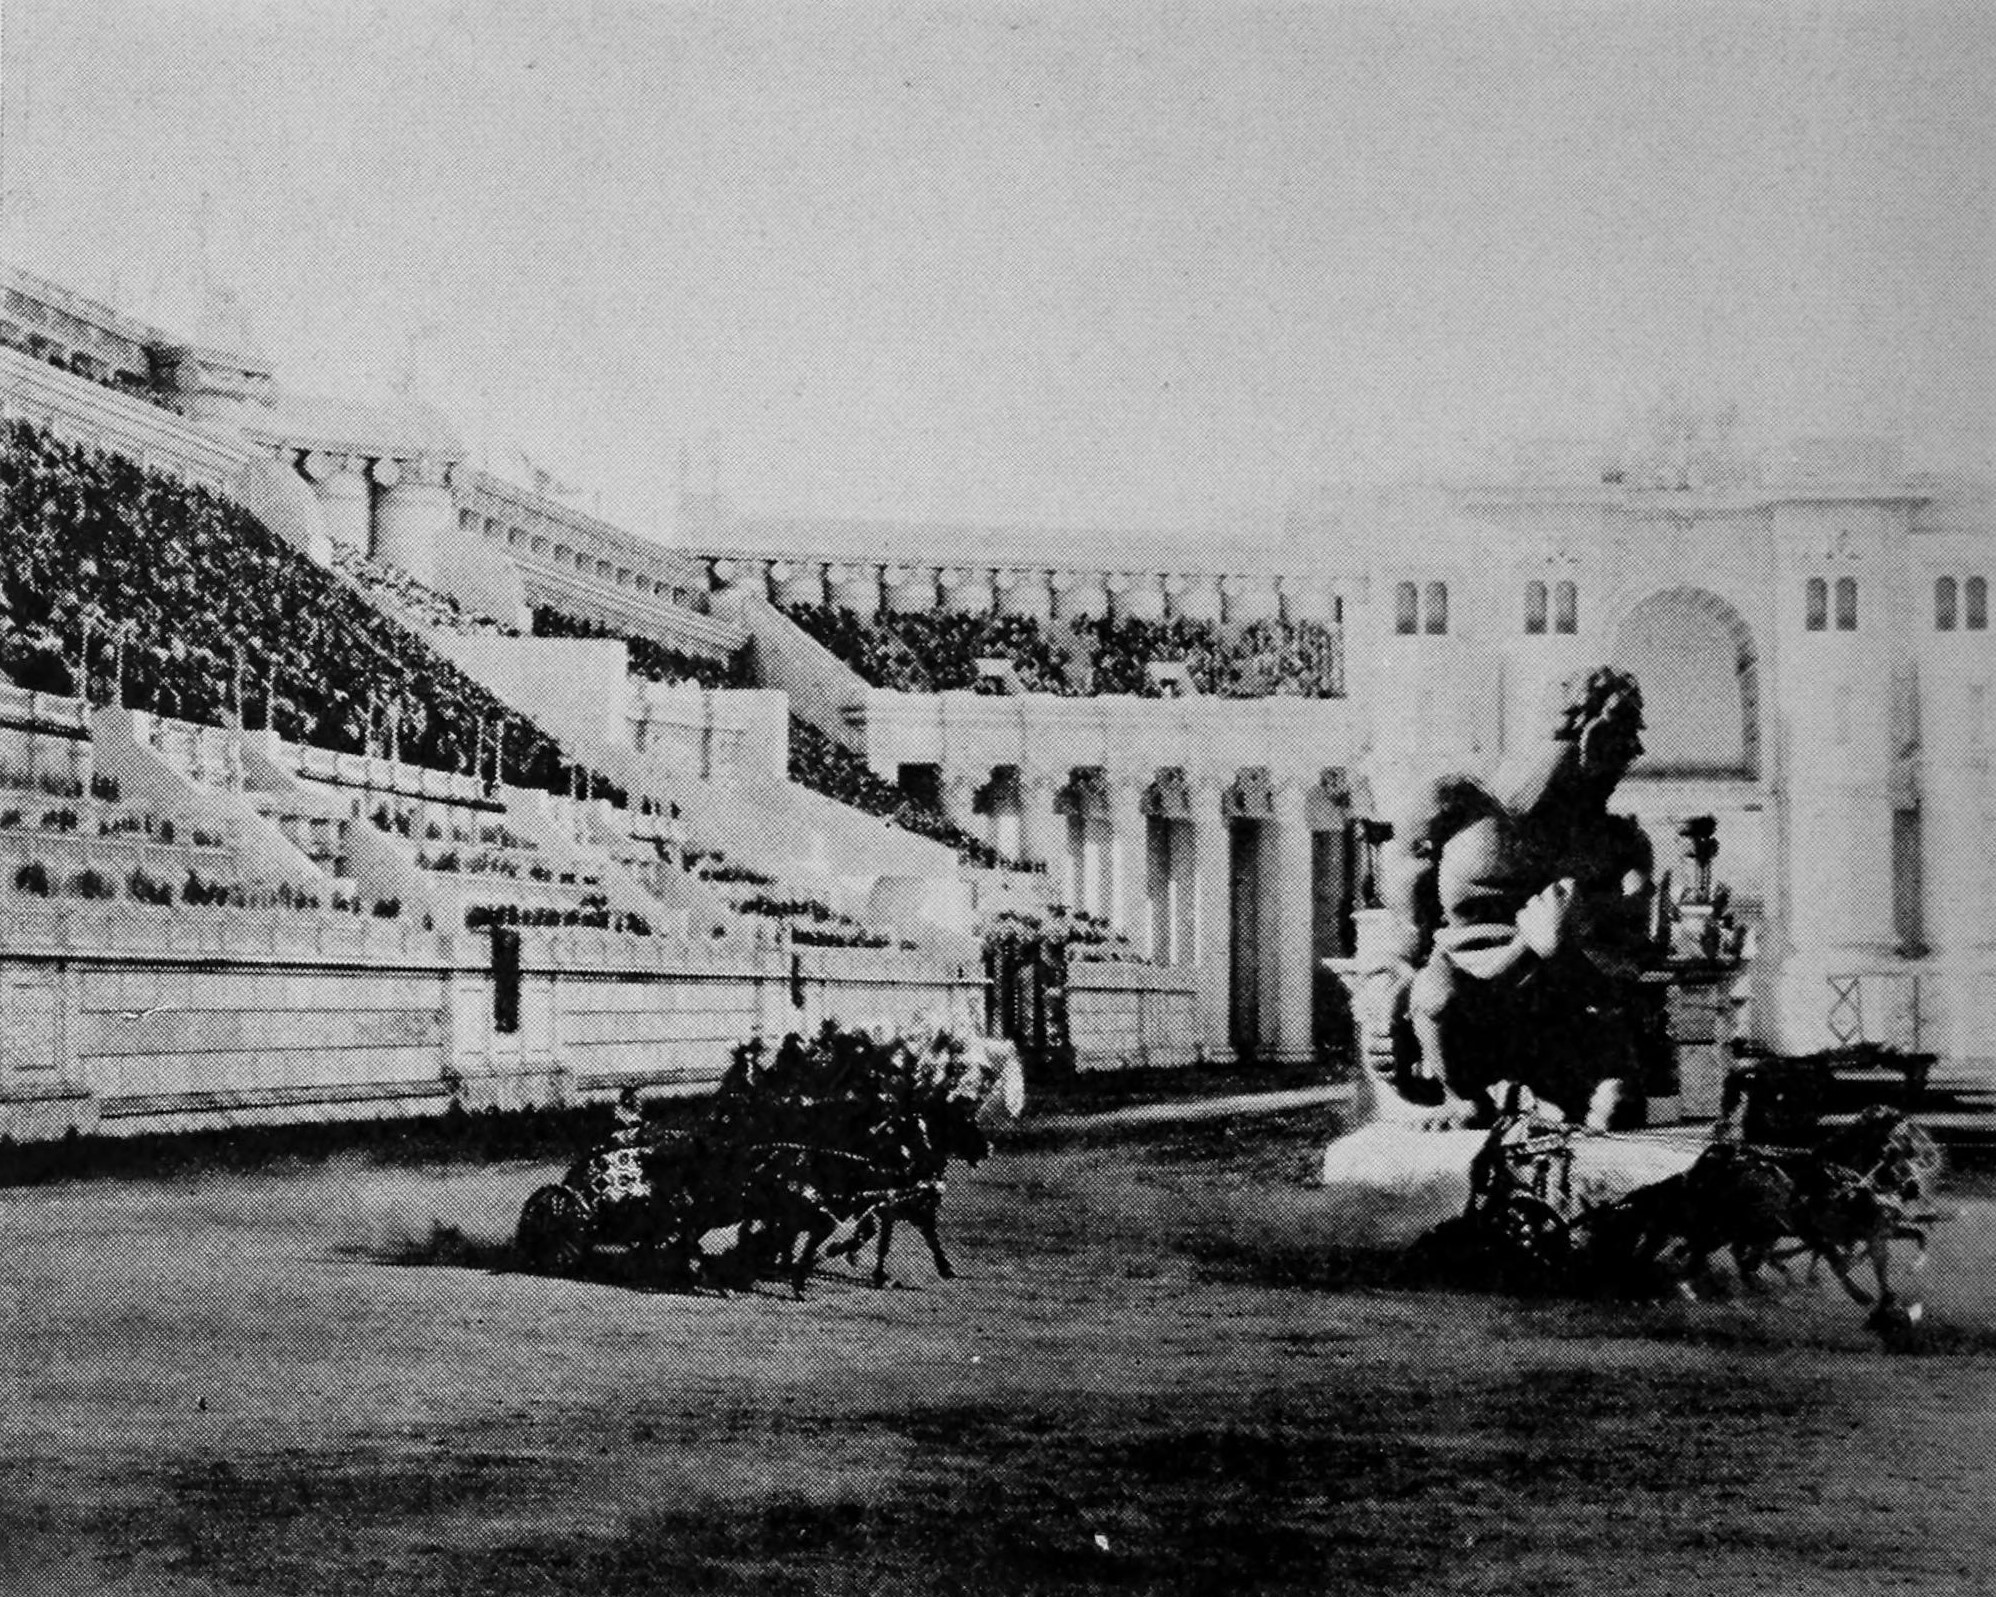 ben hur historical movie accuracy The 1959 mgm film adaptation of ben-hur is considered one of the greatest films  ever  the historical novel is filled with romantic and heroic action, including   wallace strove for accuracy in his descriptions, including several memorable.